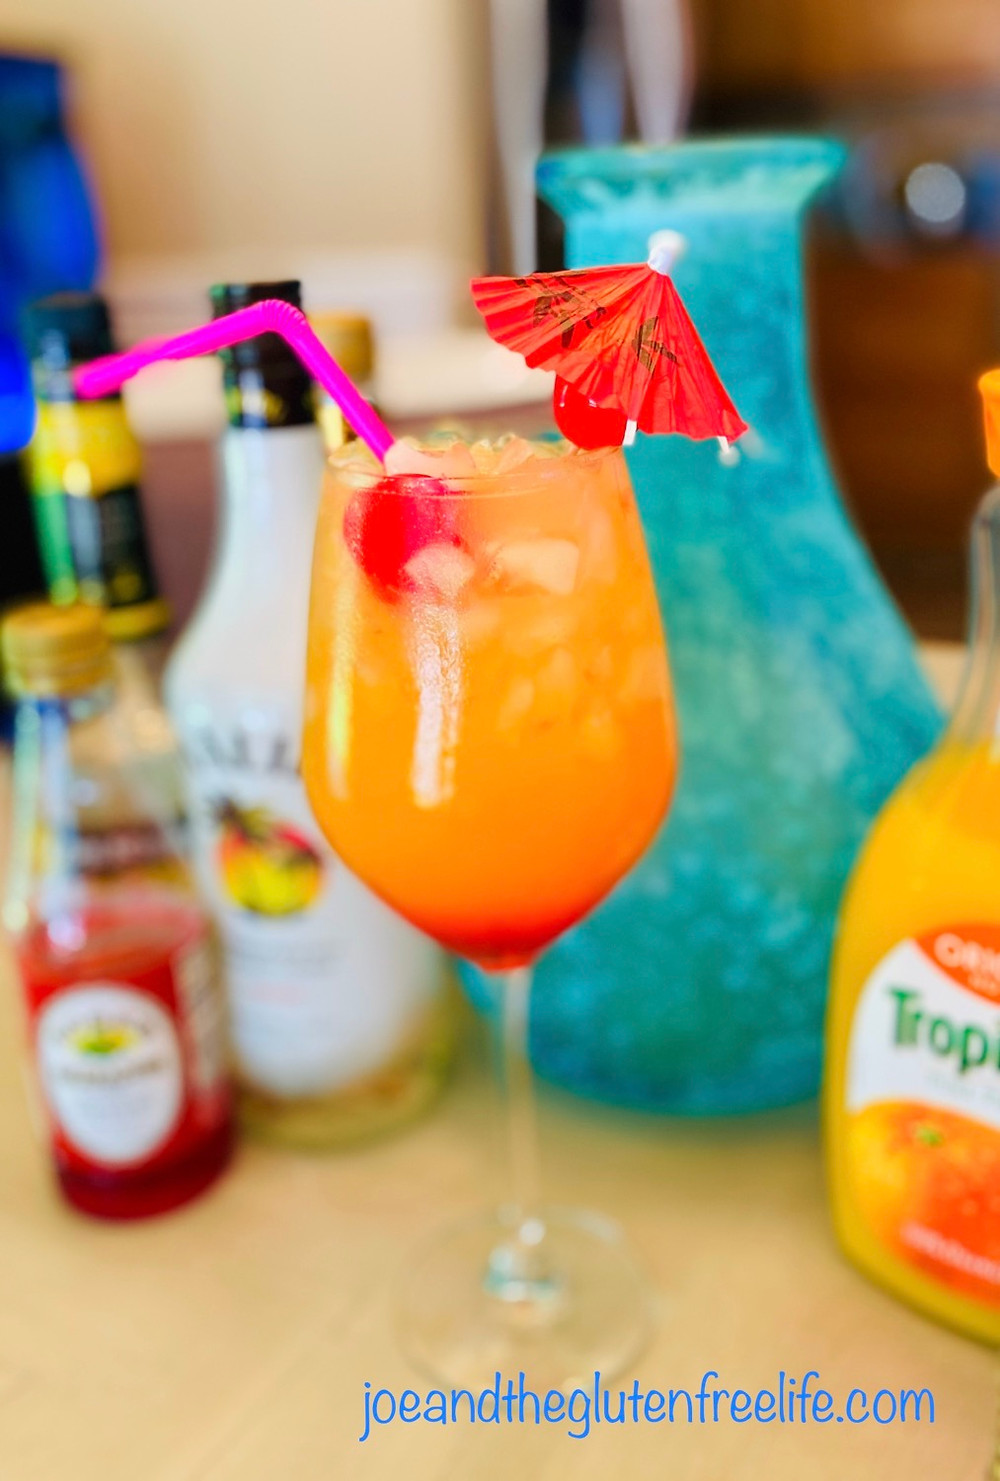 A wonderful, refreshing, and easy to make cocktail full of Caribbean flavors!